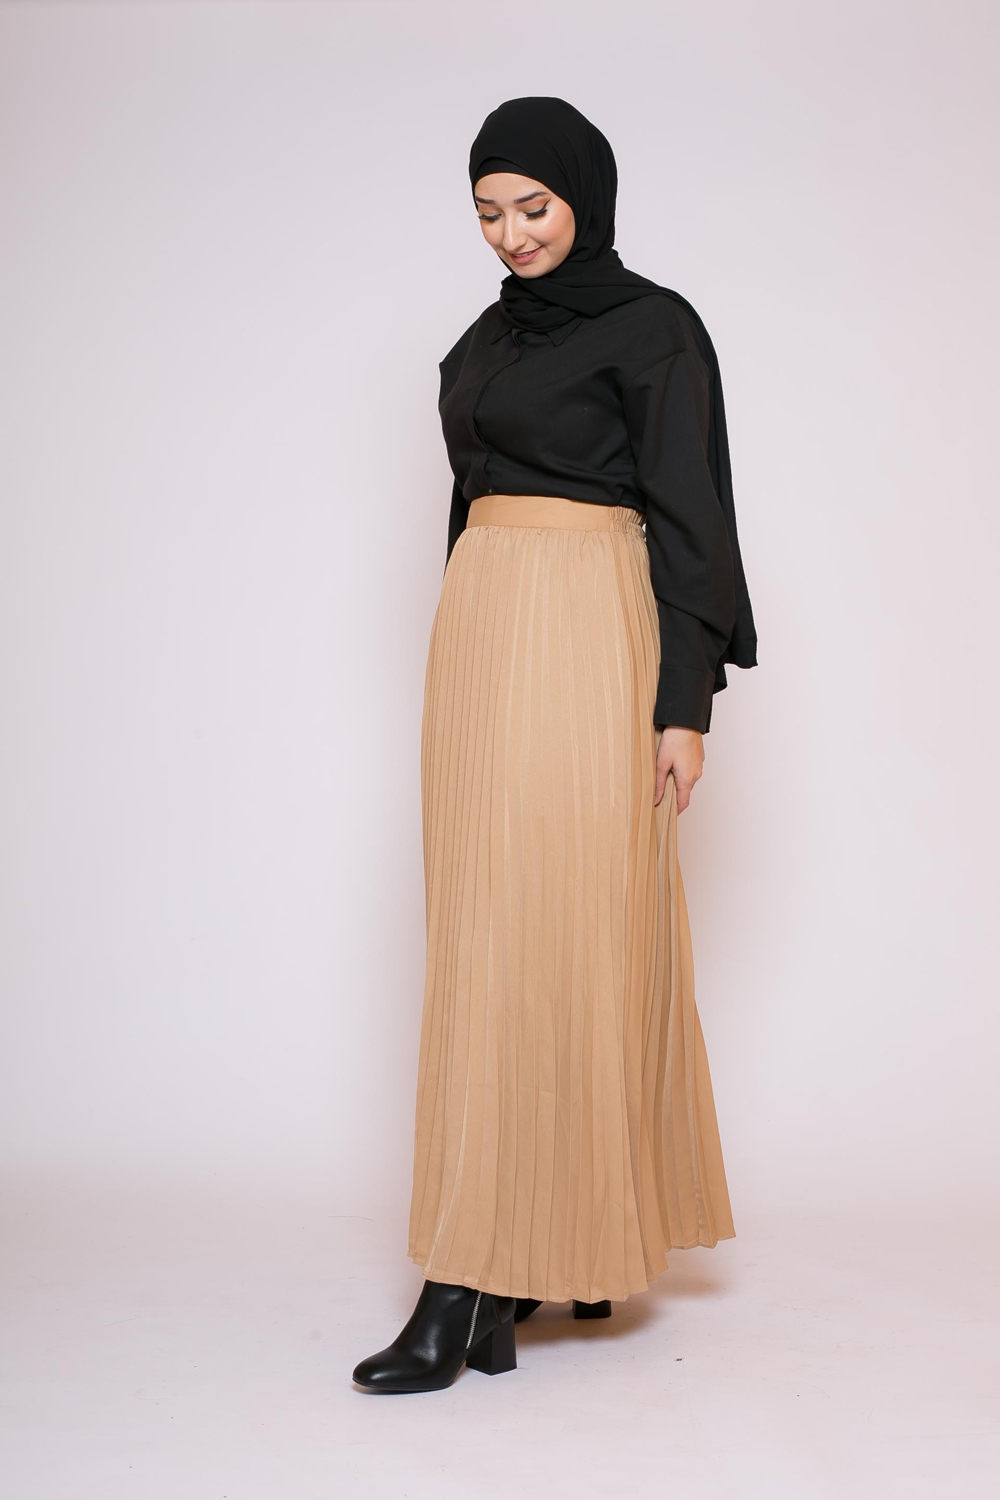 Jupe plissé nude collection femme musulmane boutique hijab